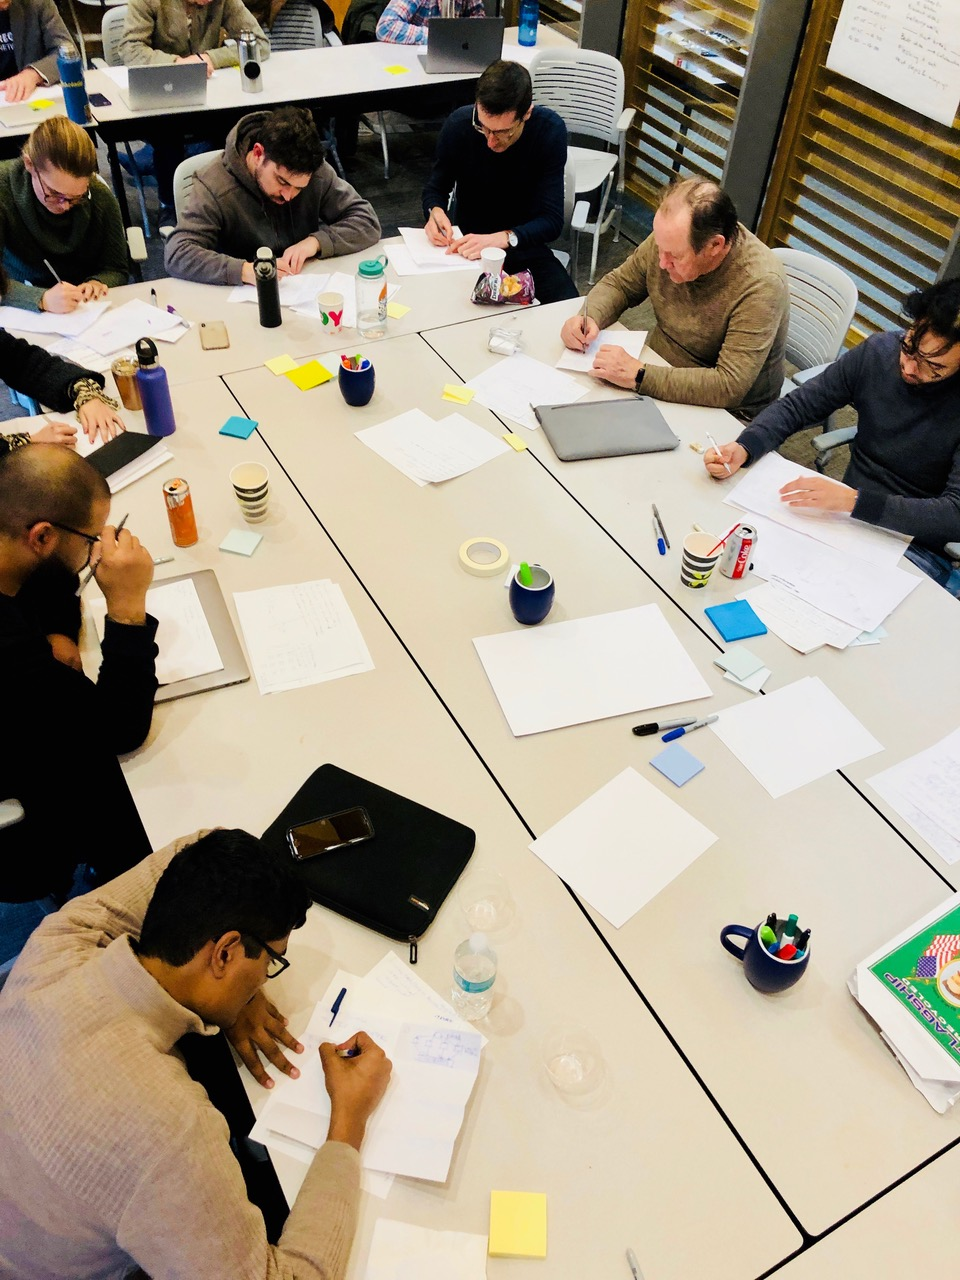 Ideation and brainstorming - Participants spent time individually brainstorming potential approaches and practices for securely connecting sensor data and blockchain-based carbon accounting, using basic materials like paper, pens, and post-its to give form to their ideas.